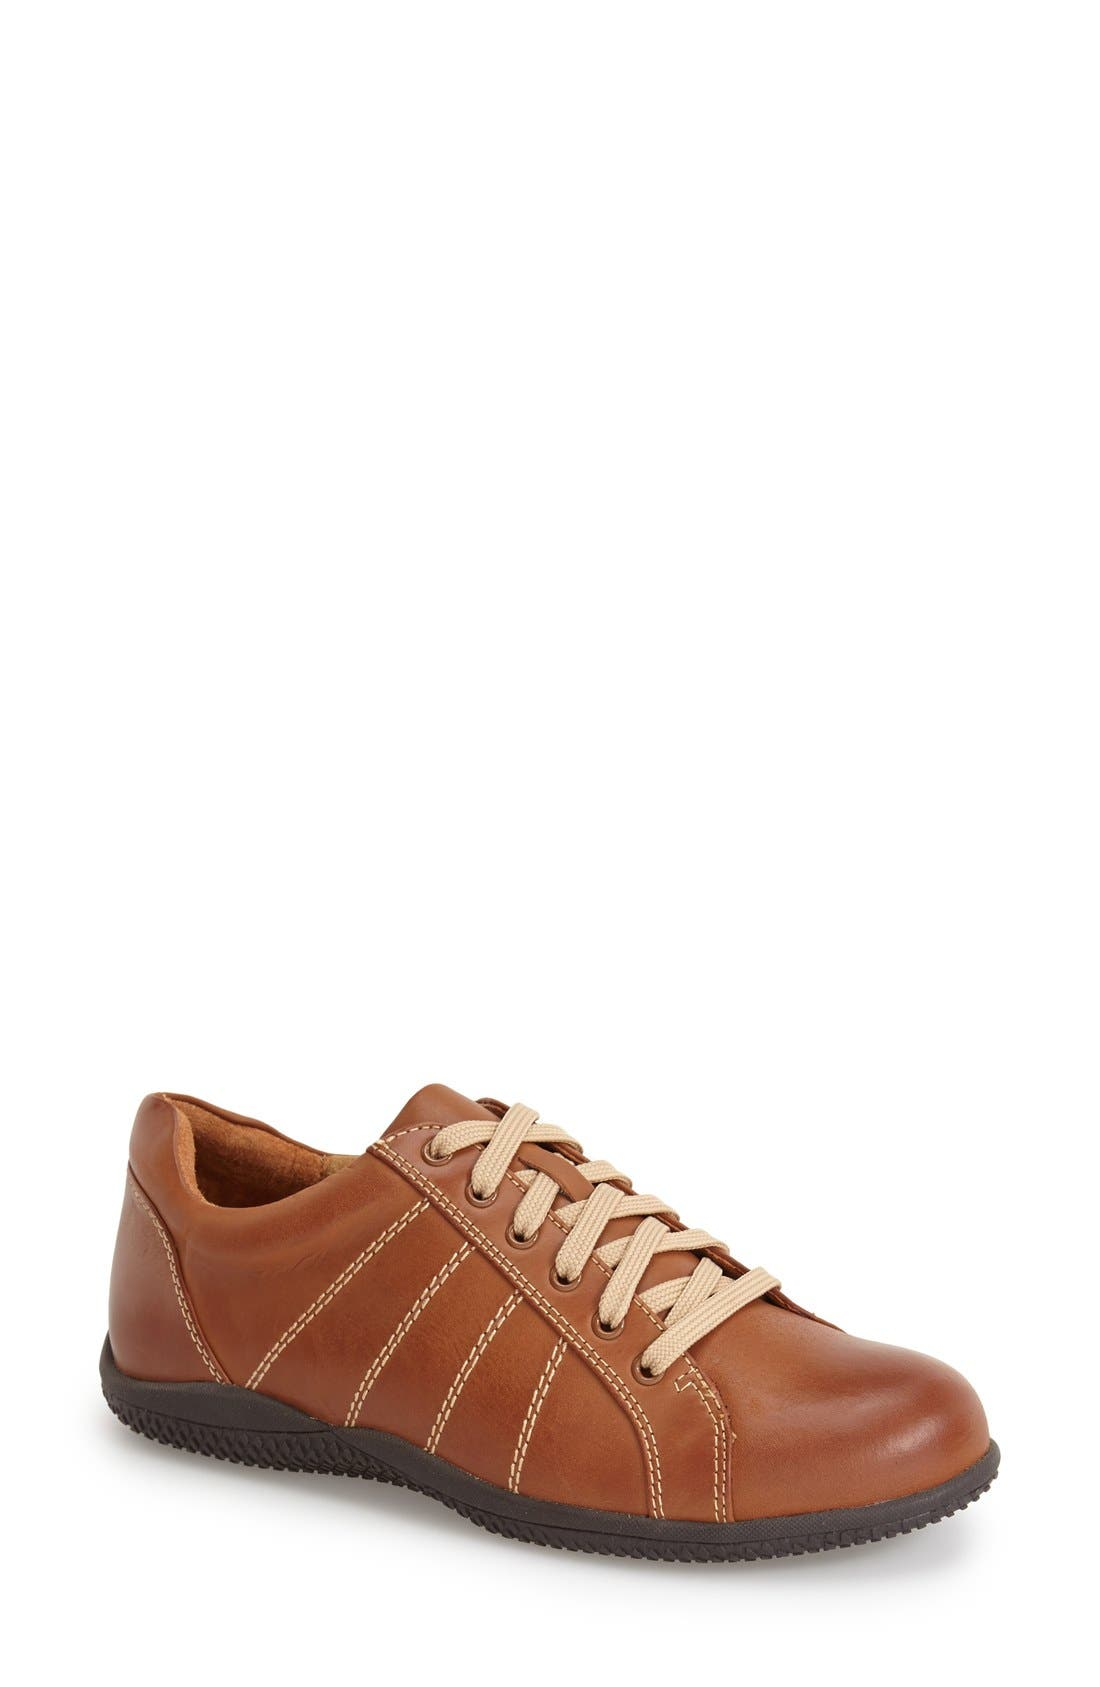 'Hickory' Sneaker,                             Main thumbnail 1, color,                             Luggage